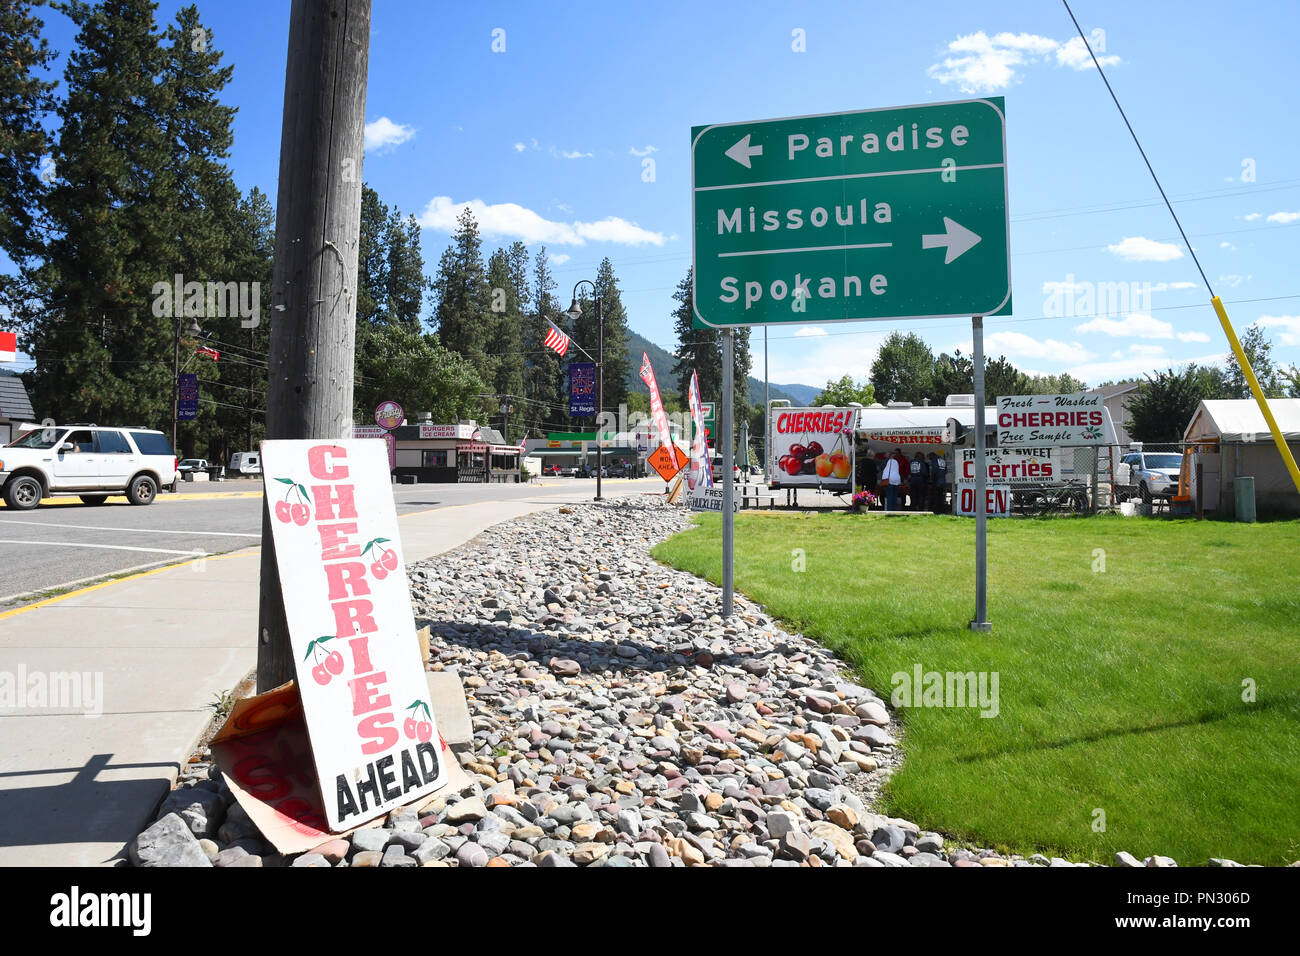 ST. REGIS, MONTANA, USA: September 1, 2018: Sign points to Paradise, Missoula and Spokane with a cherry stand in behind it Stock Photo